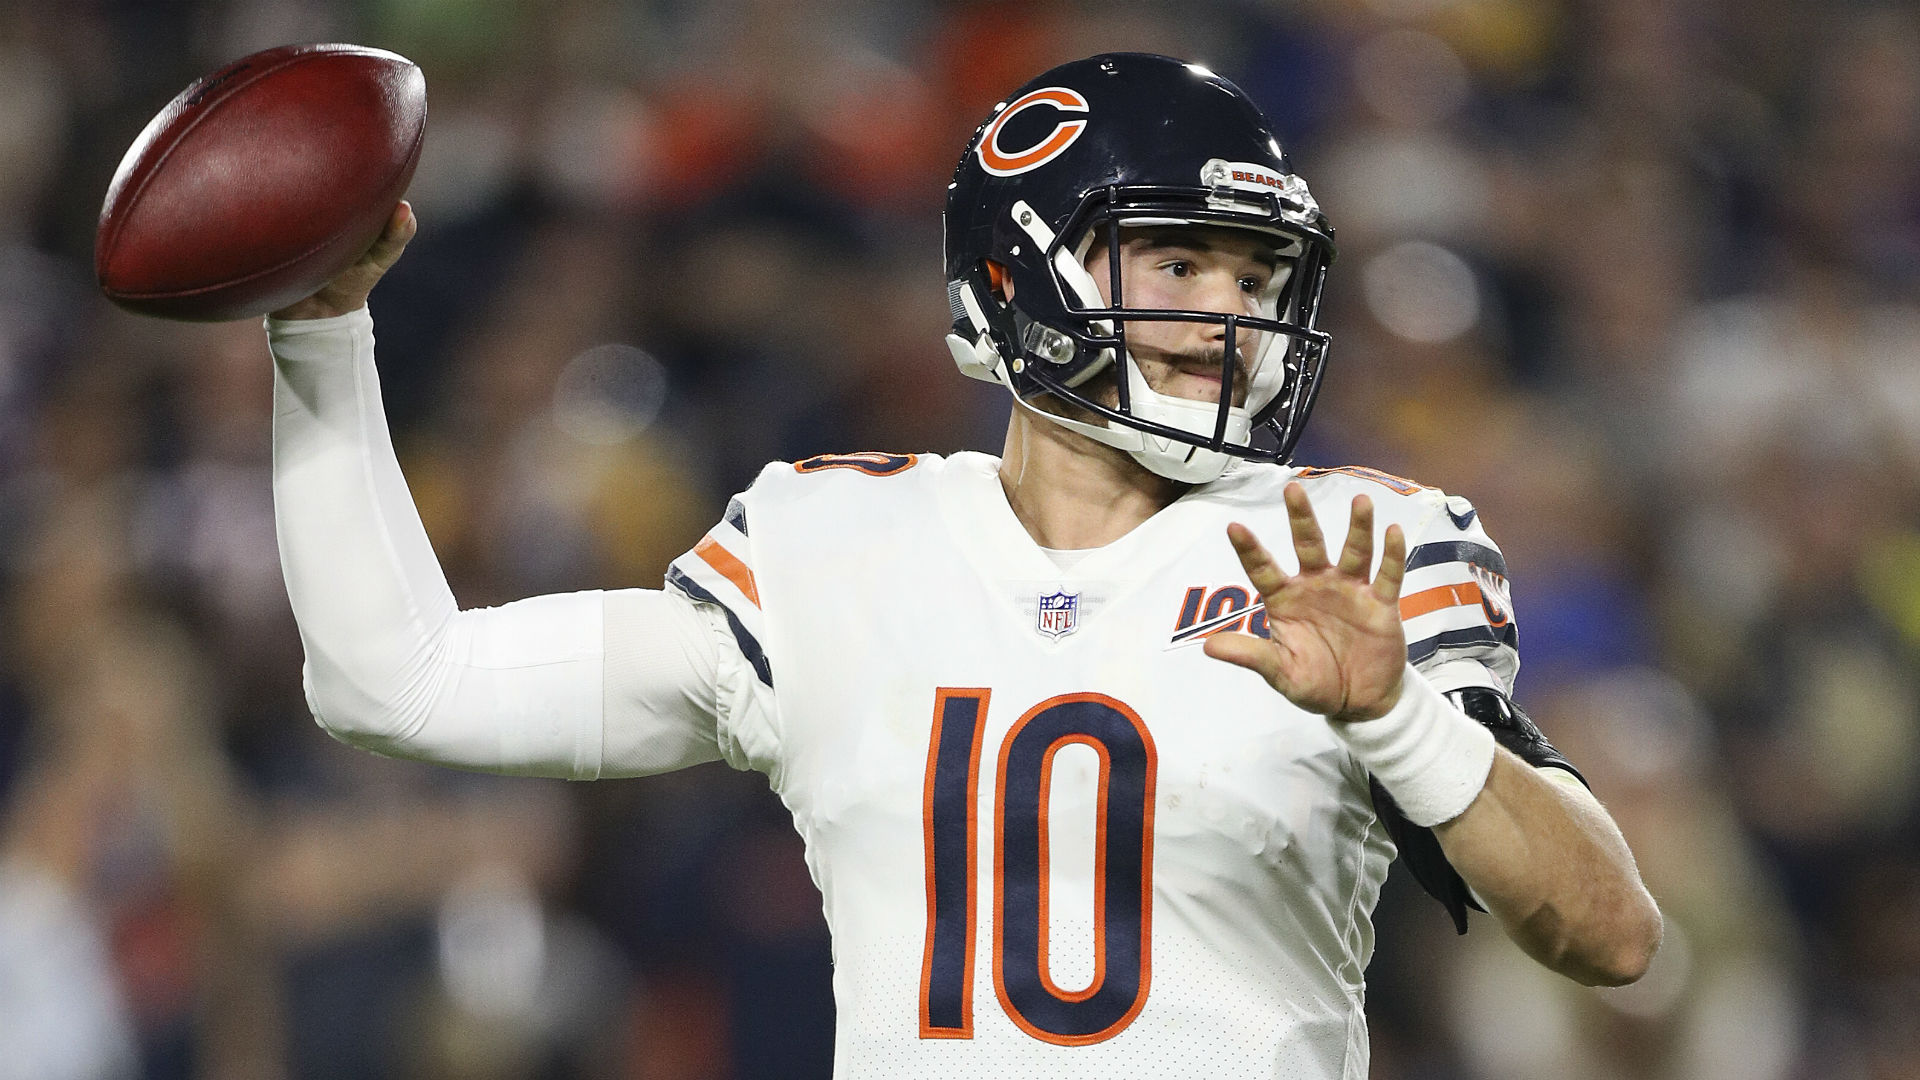 Mitchell Trubisky will start for the Chicago Bears this weekend provided he recovers from a hip injury, as expected.